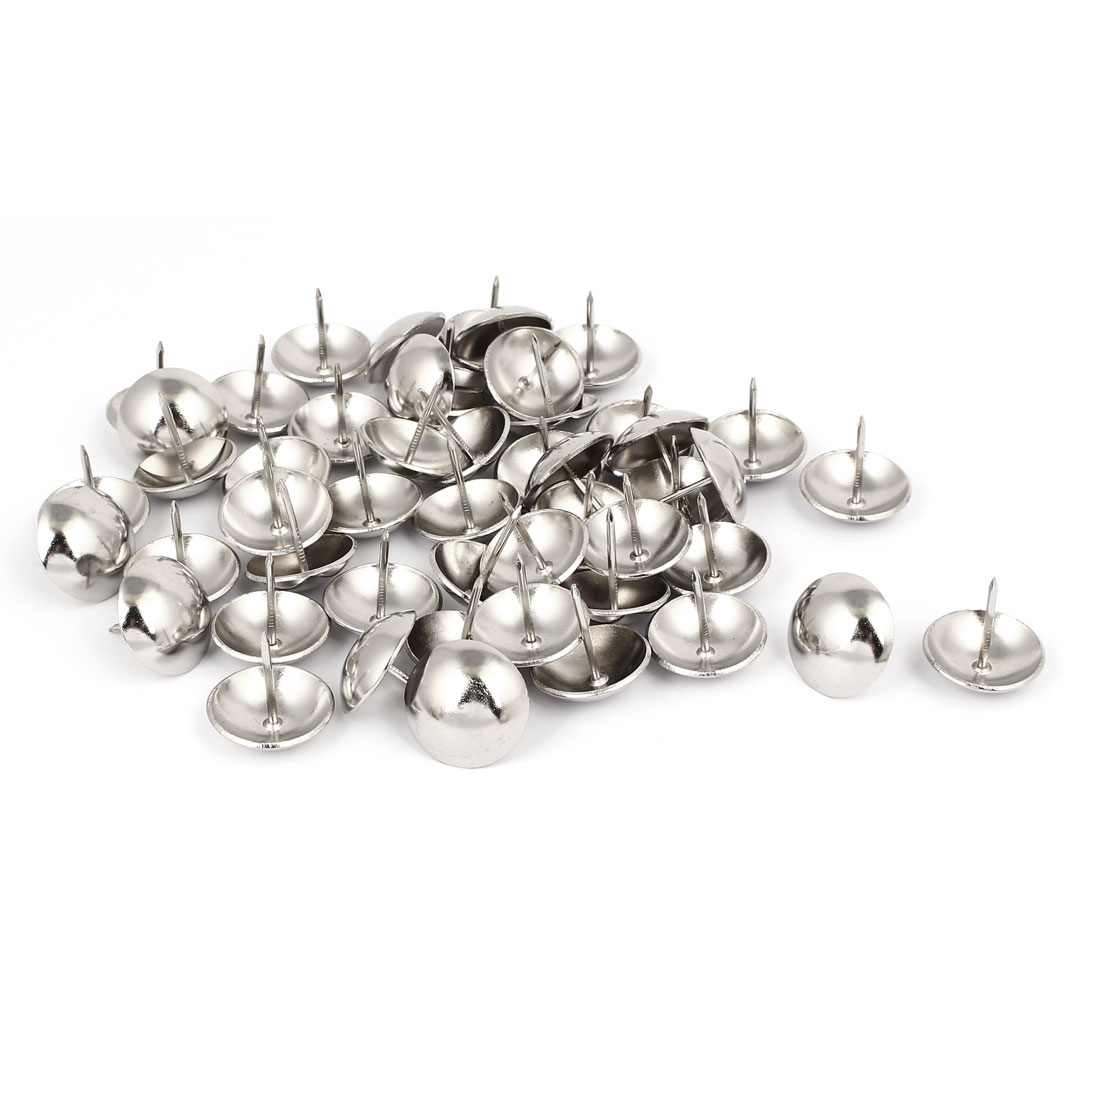 Home Metal Round Domed Head Upholstery Tack Nail Silver Tone 25mm Dia 50pcs